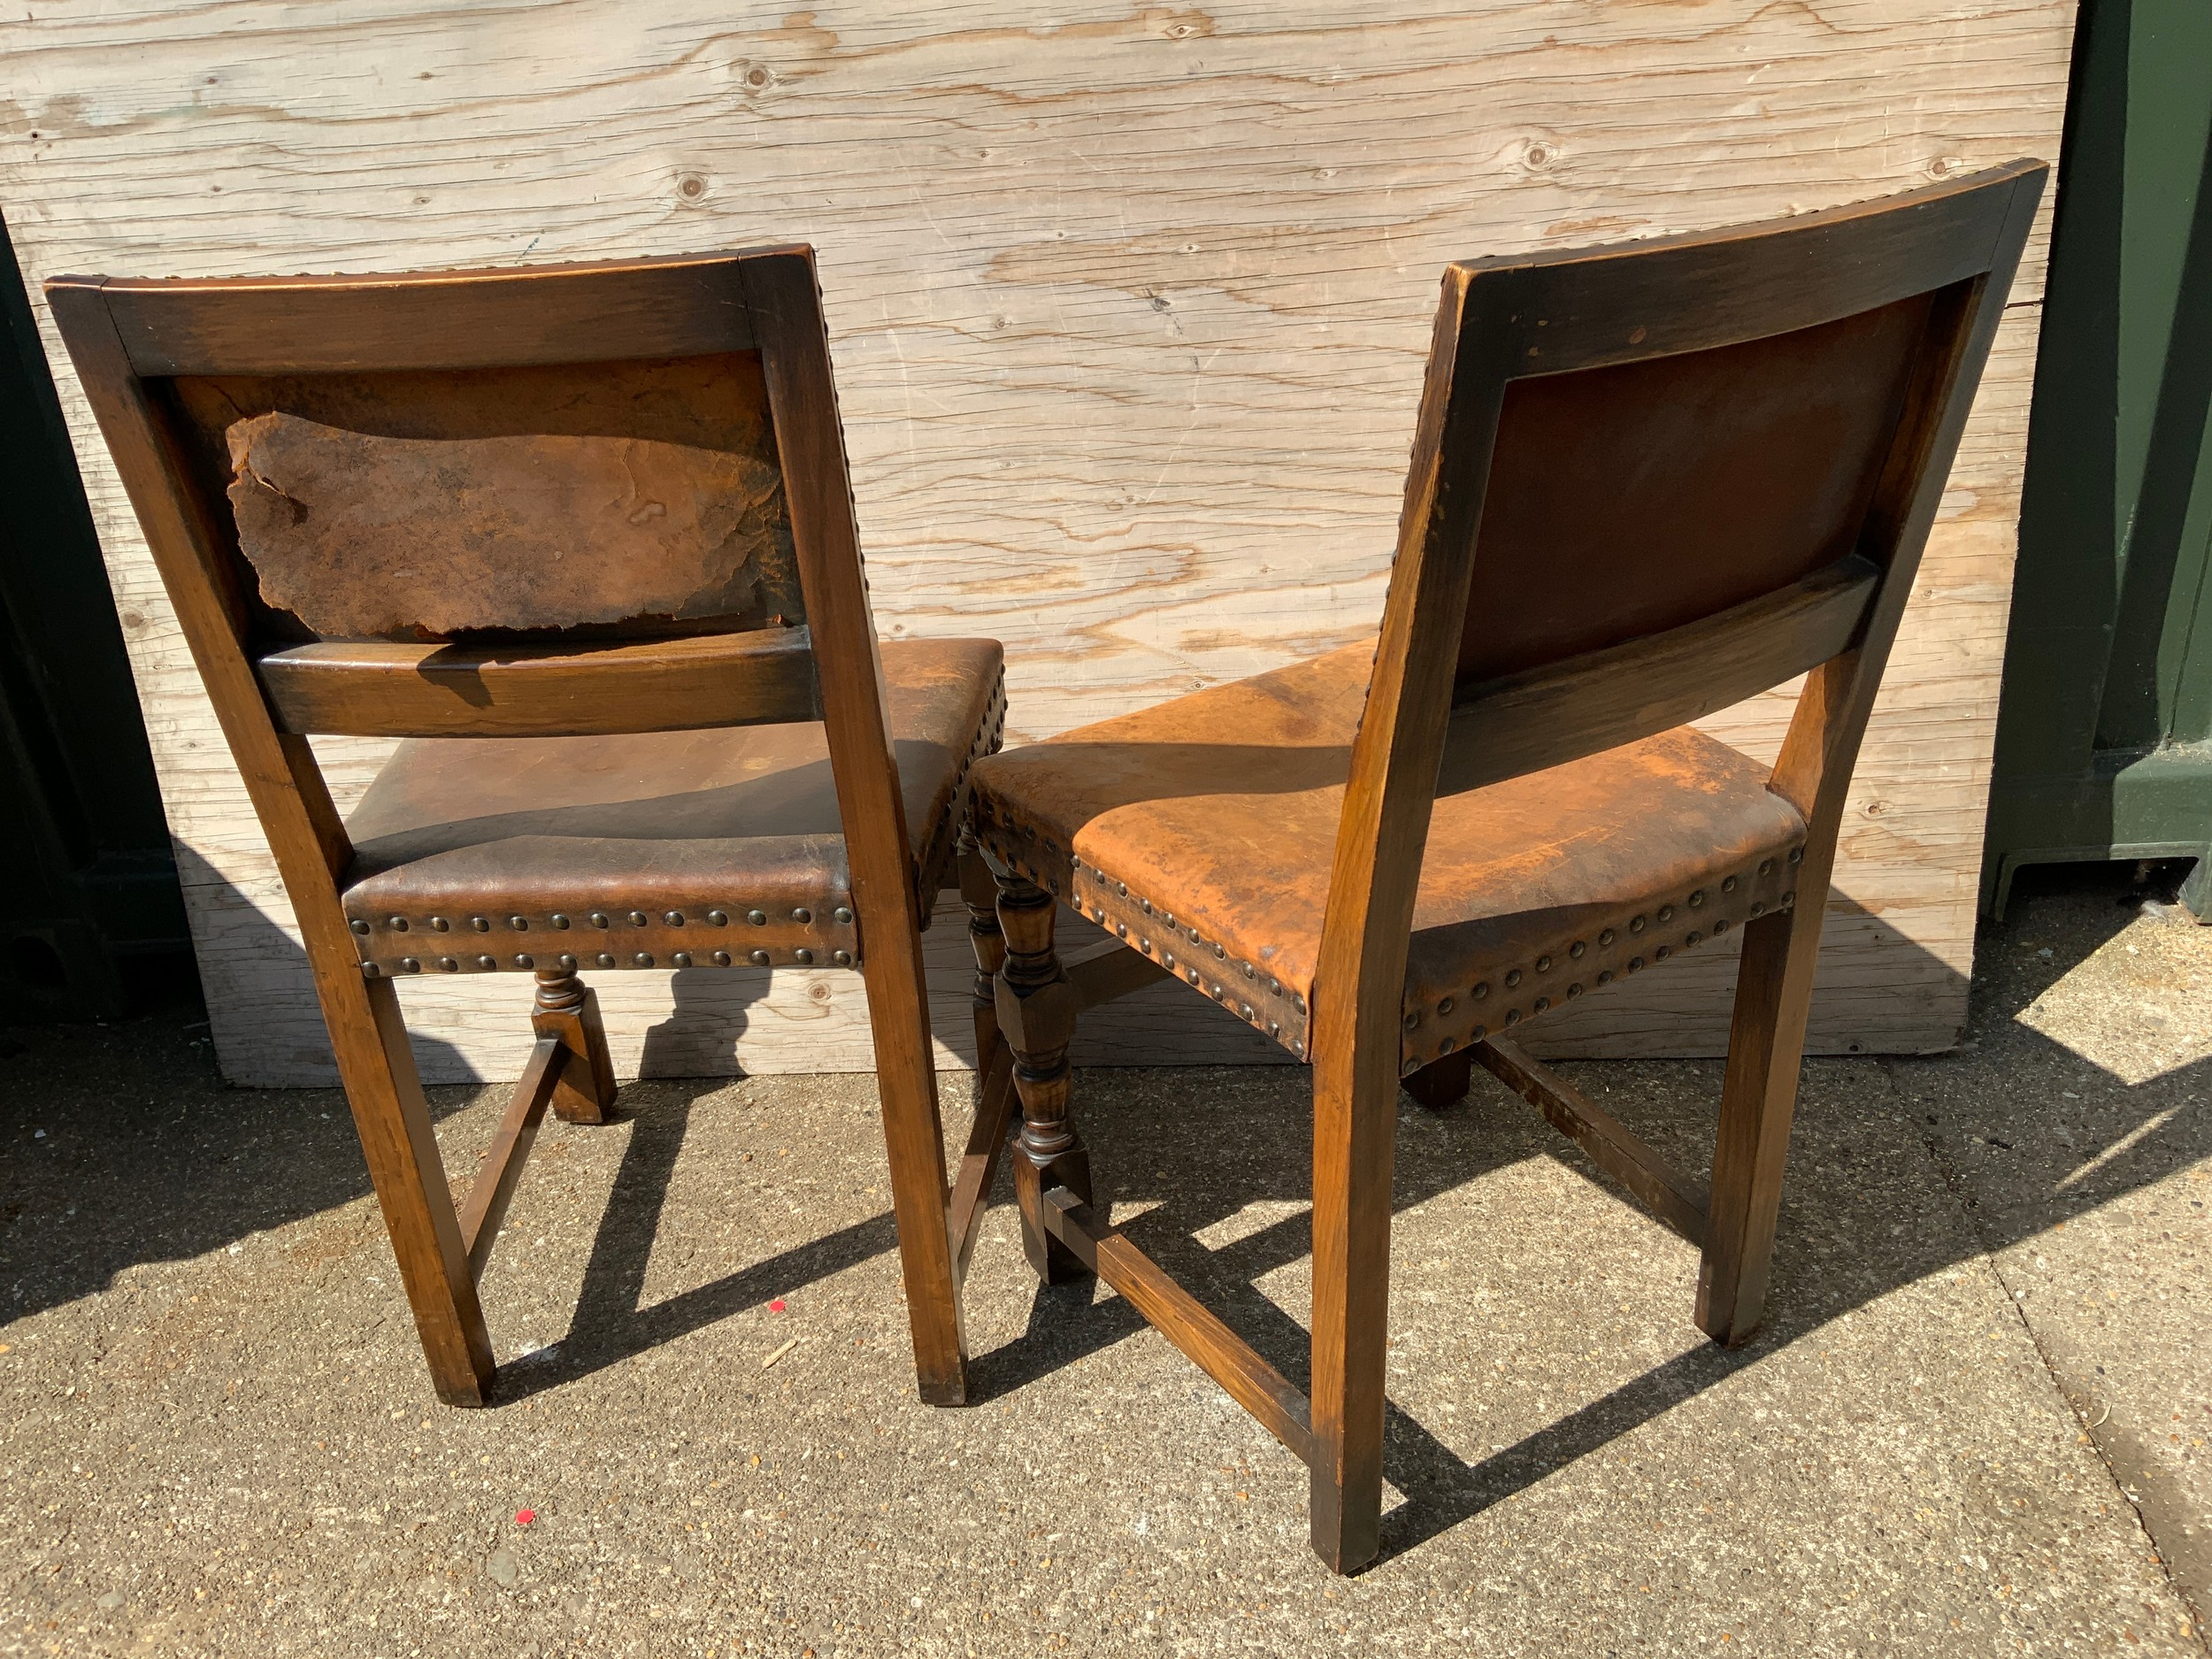 Pair of Oak Leather Covered Roseback Brass Studded Chairs - Image 2 of 2